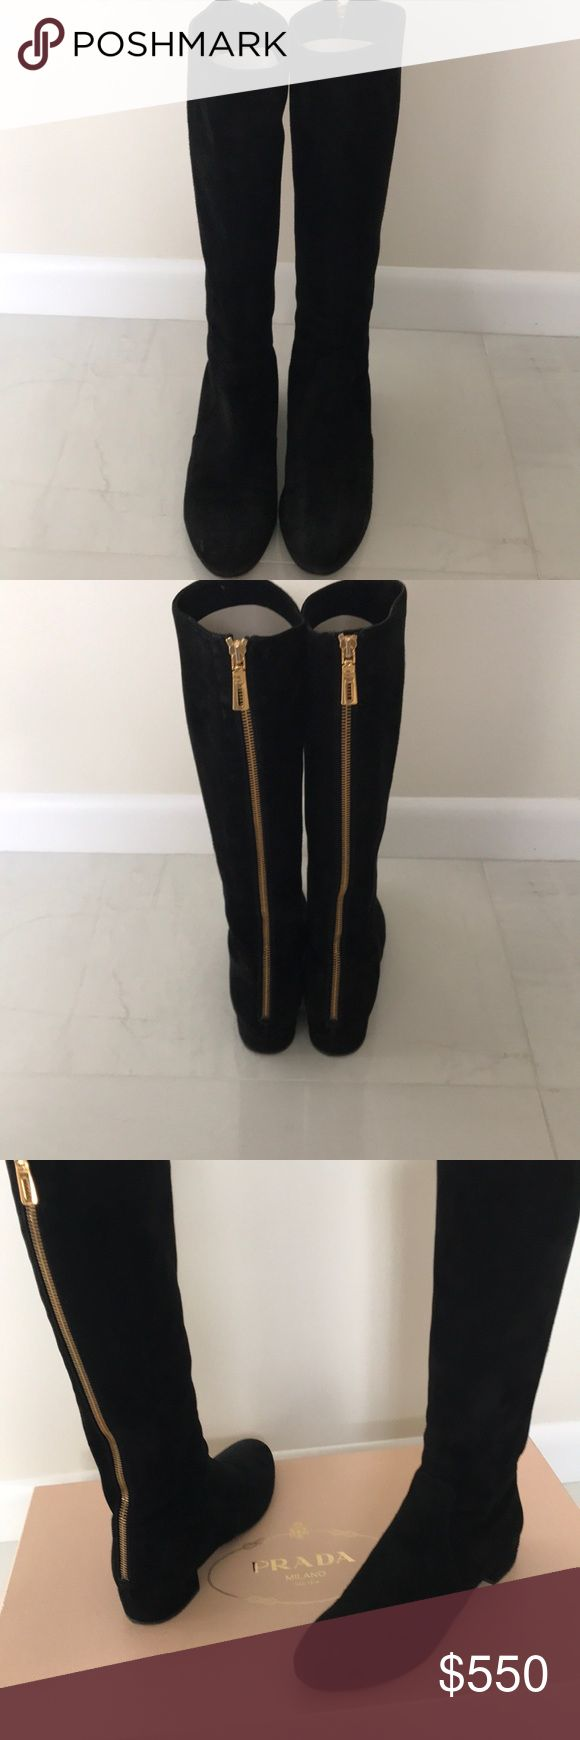 Prada women's boots Prada black suede to the knee boots in very good condition Prada Shoes